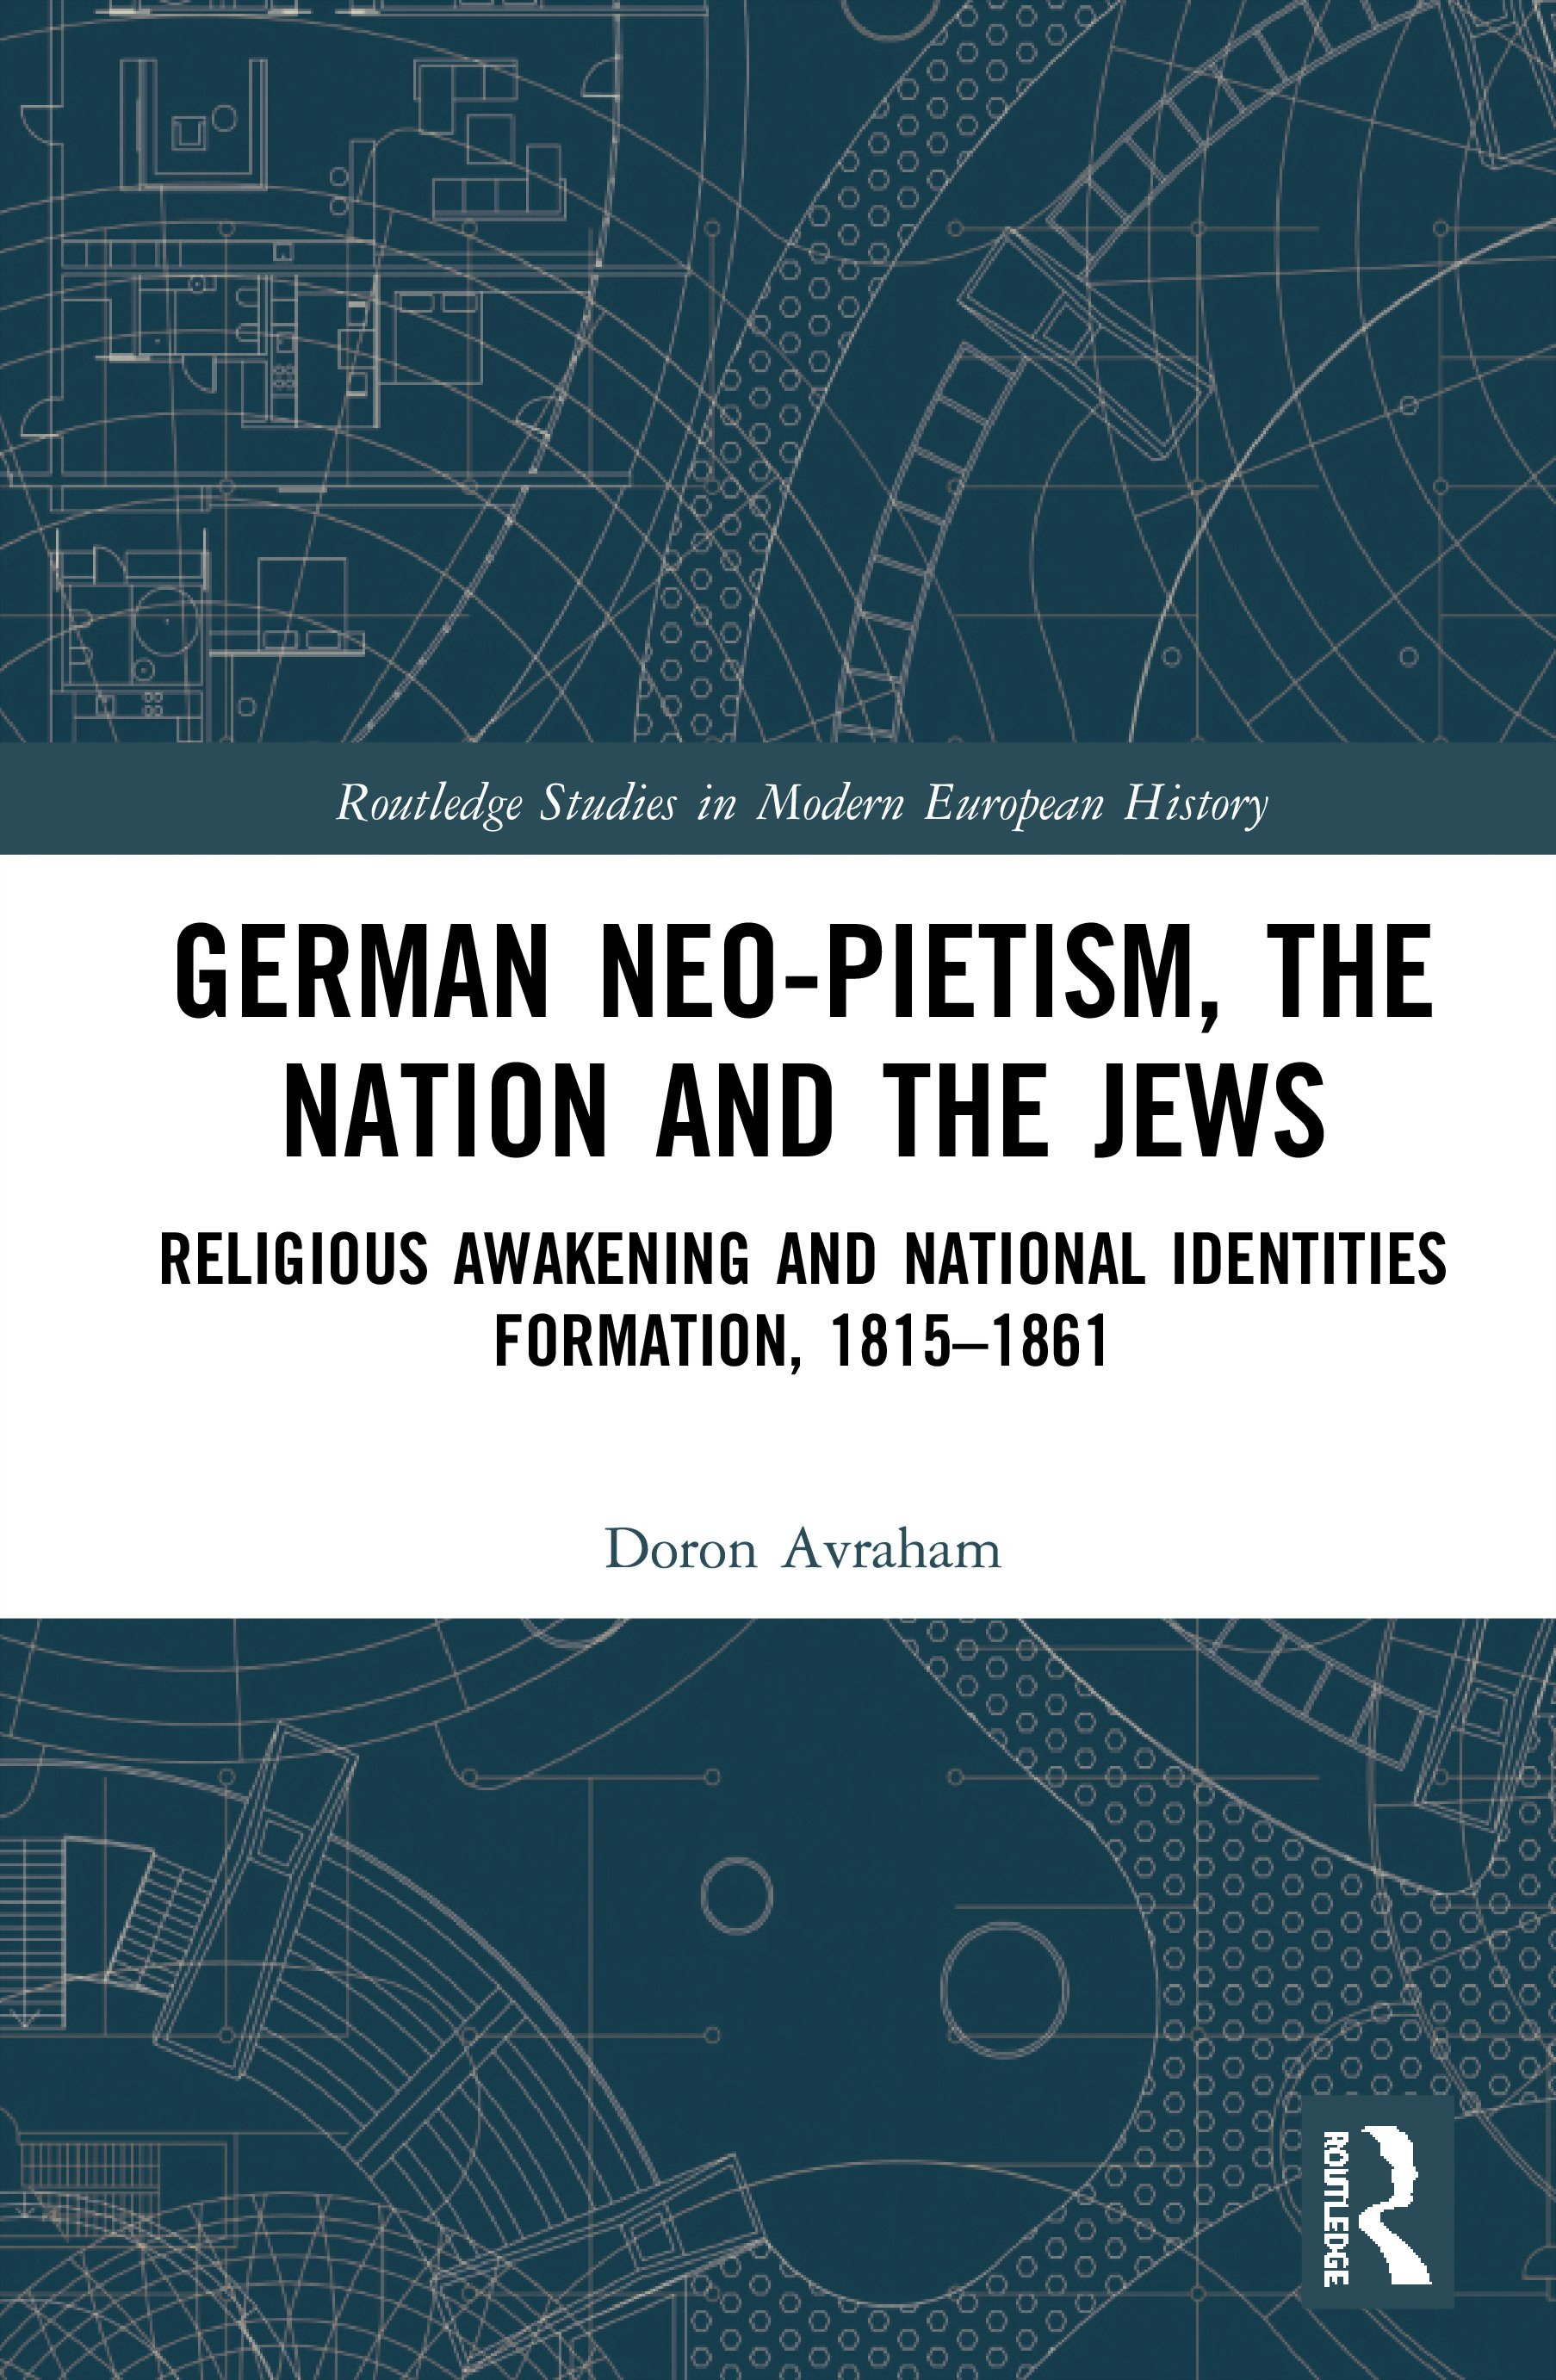 German Neo-Pietism, the Nation and the Jews: Religious Awakening and National Identities Formation, 1815–1861 book cover